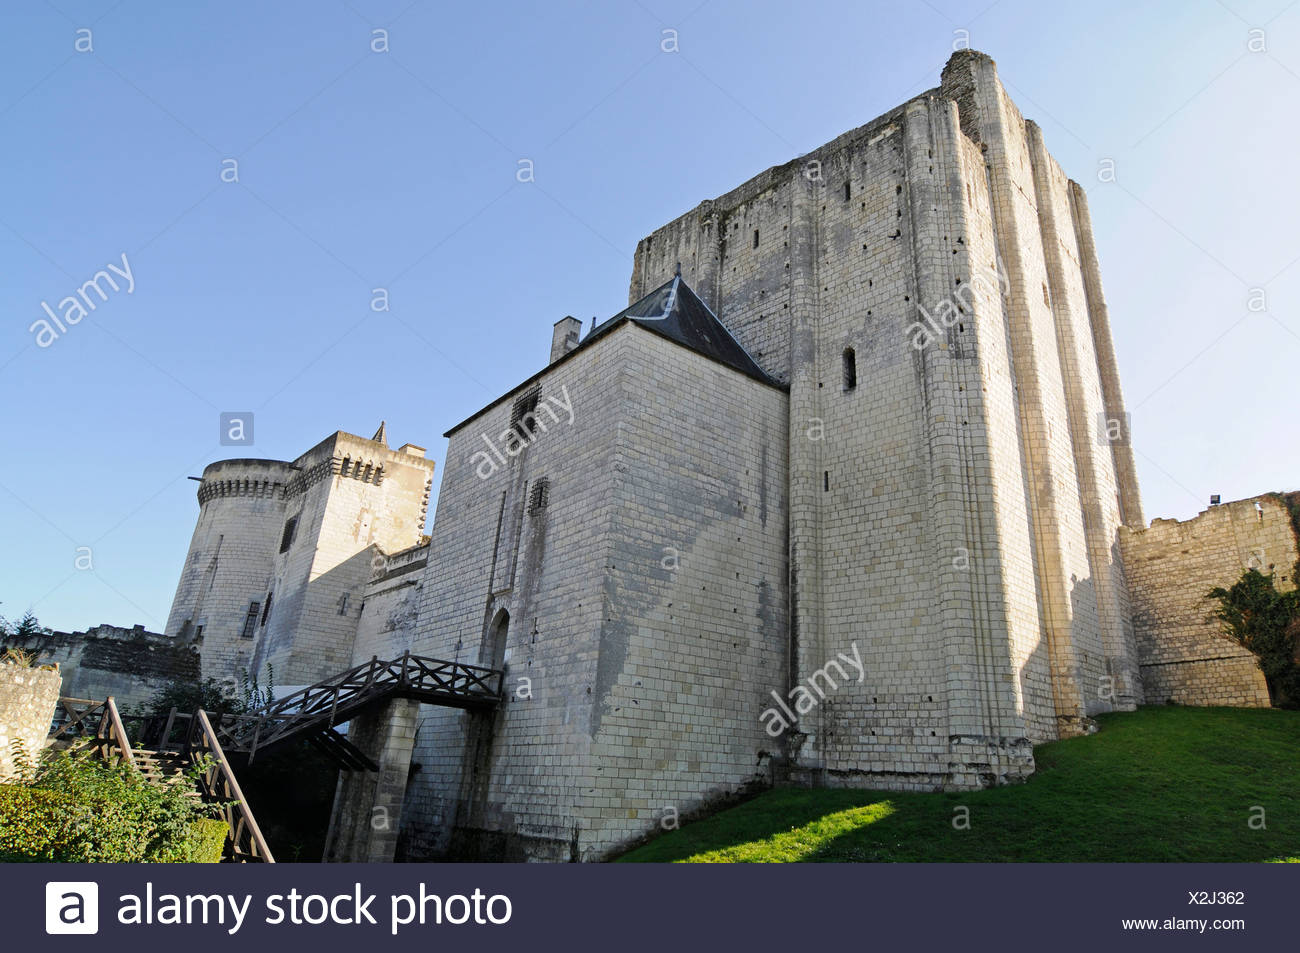 Donjon tower, castle, fortress, Loches, Tours, Indre-et-Loire, Centre region, France, Europe, PublicGround - Stock Image